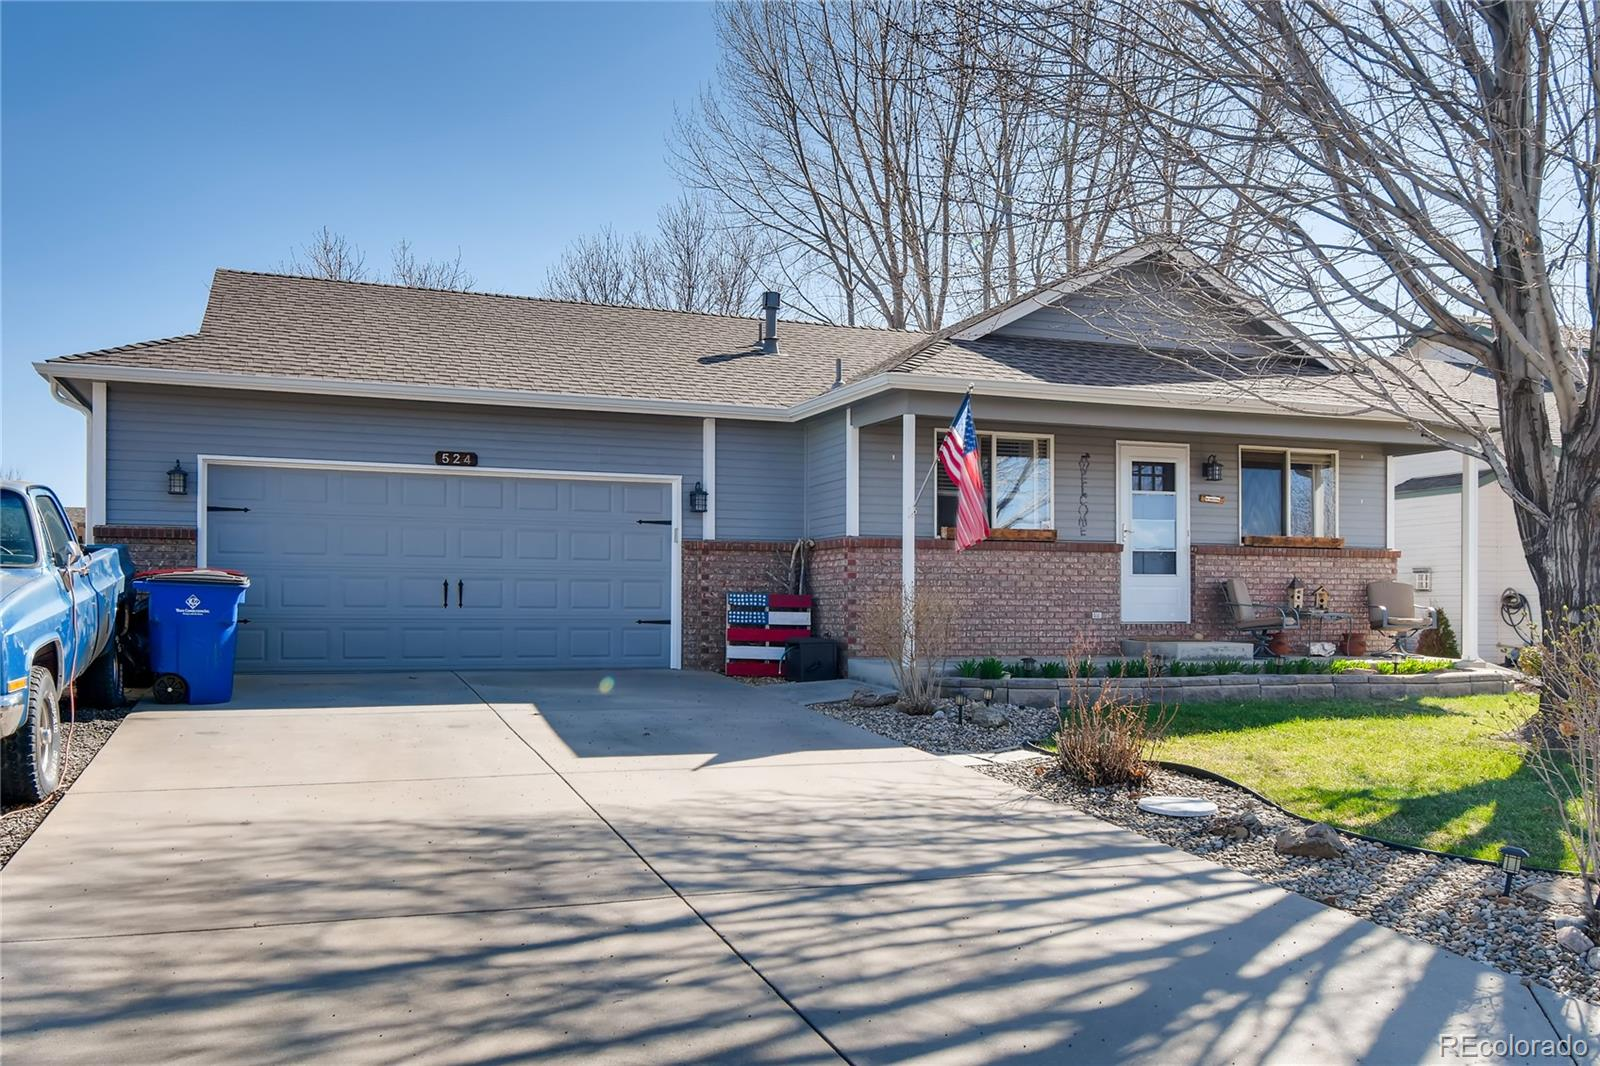 MLS# 3845561 - 1 - 524 Hawthorn Circle, Frederick, CO 80530